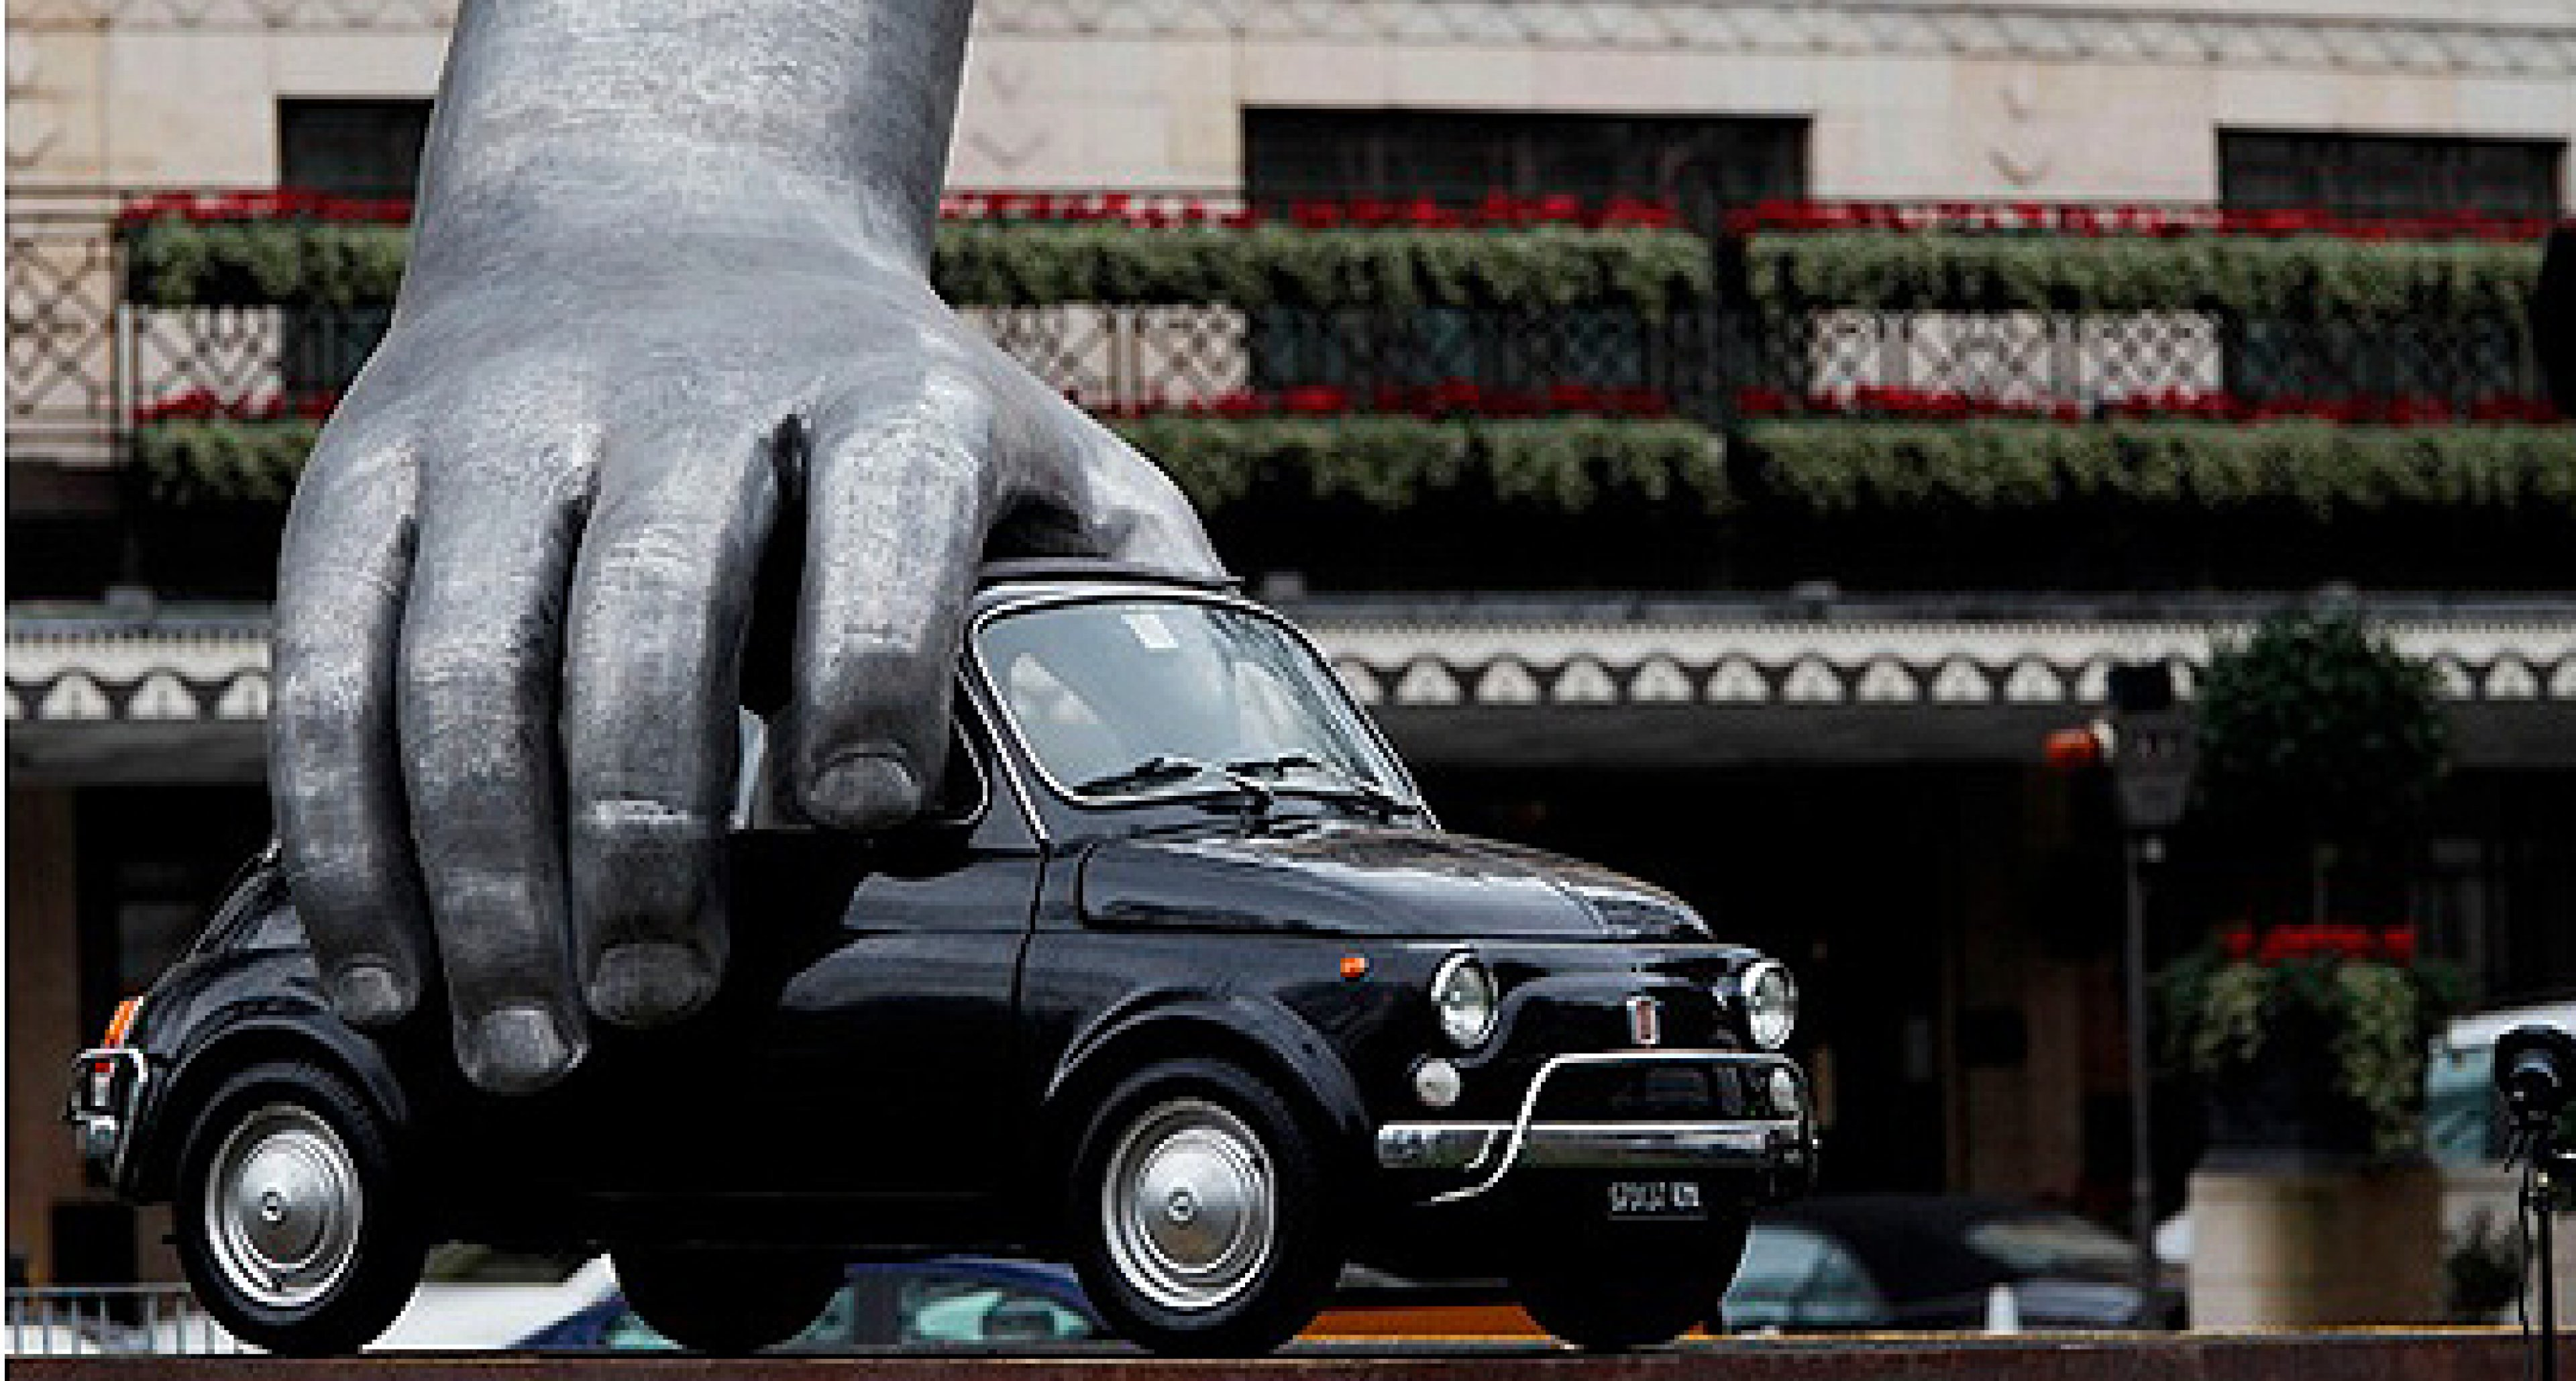 Vroom Vroom: Fiat Sculpture in the Heart of London